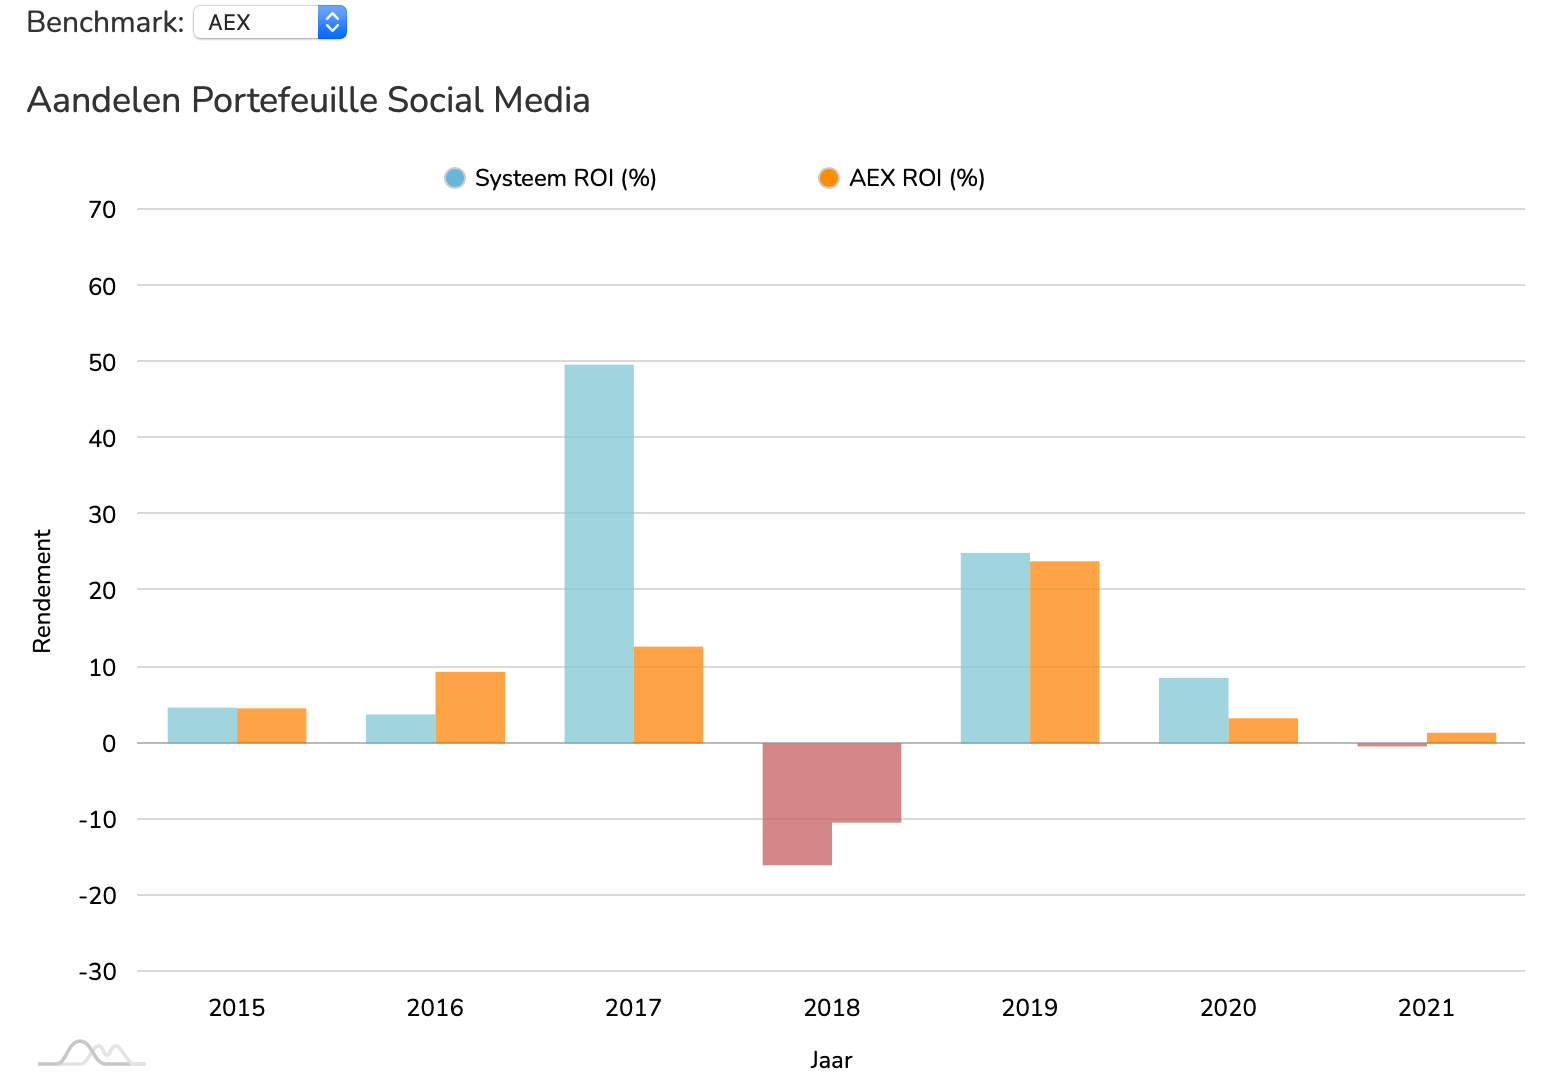 Aandelen Social Media ROI vs AEX